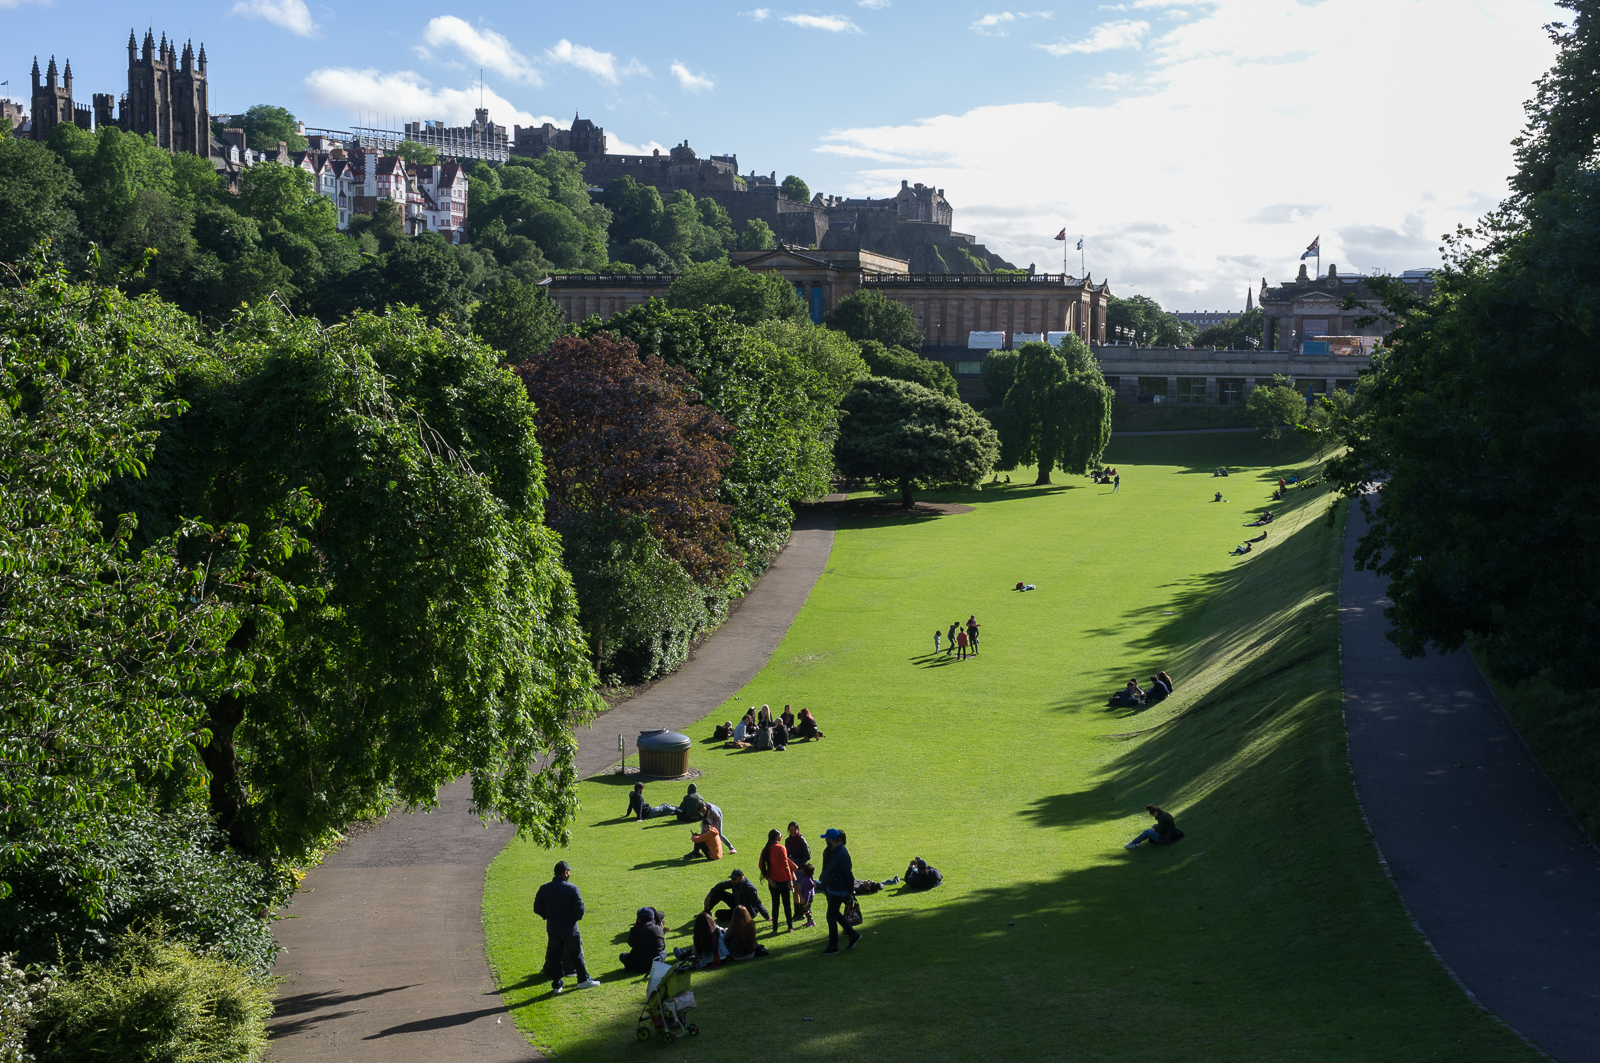 Princes Street Gardens (looking west) with the National Gallery in the background